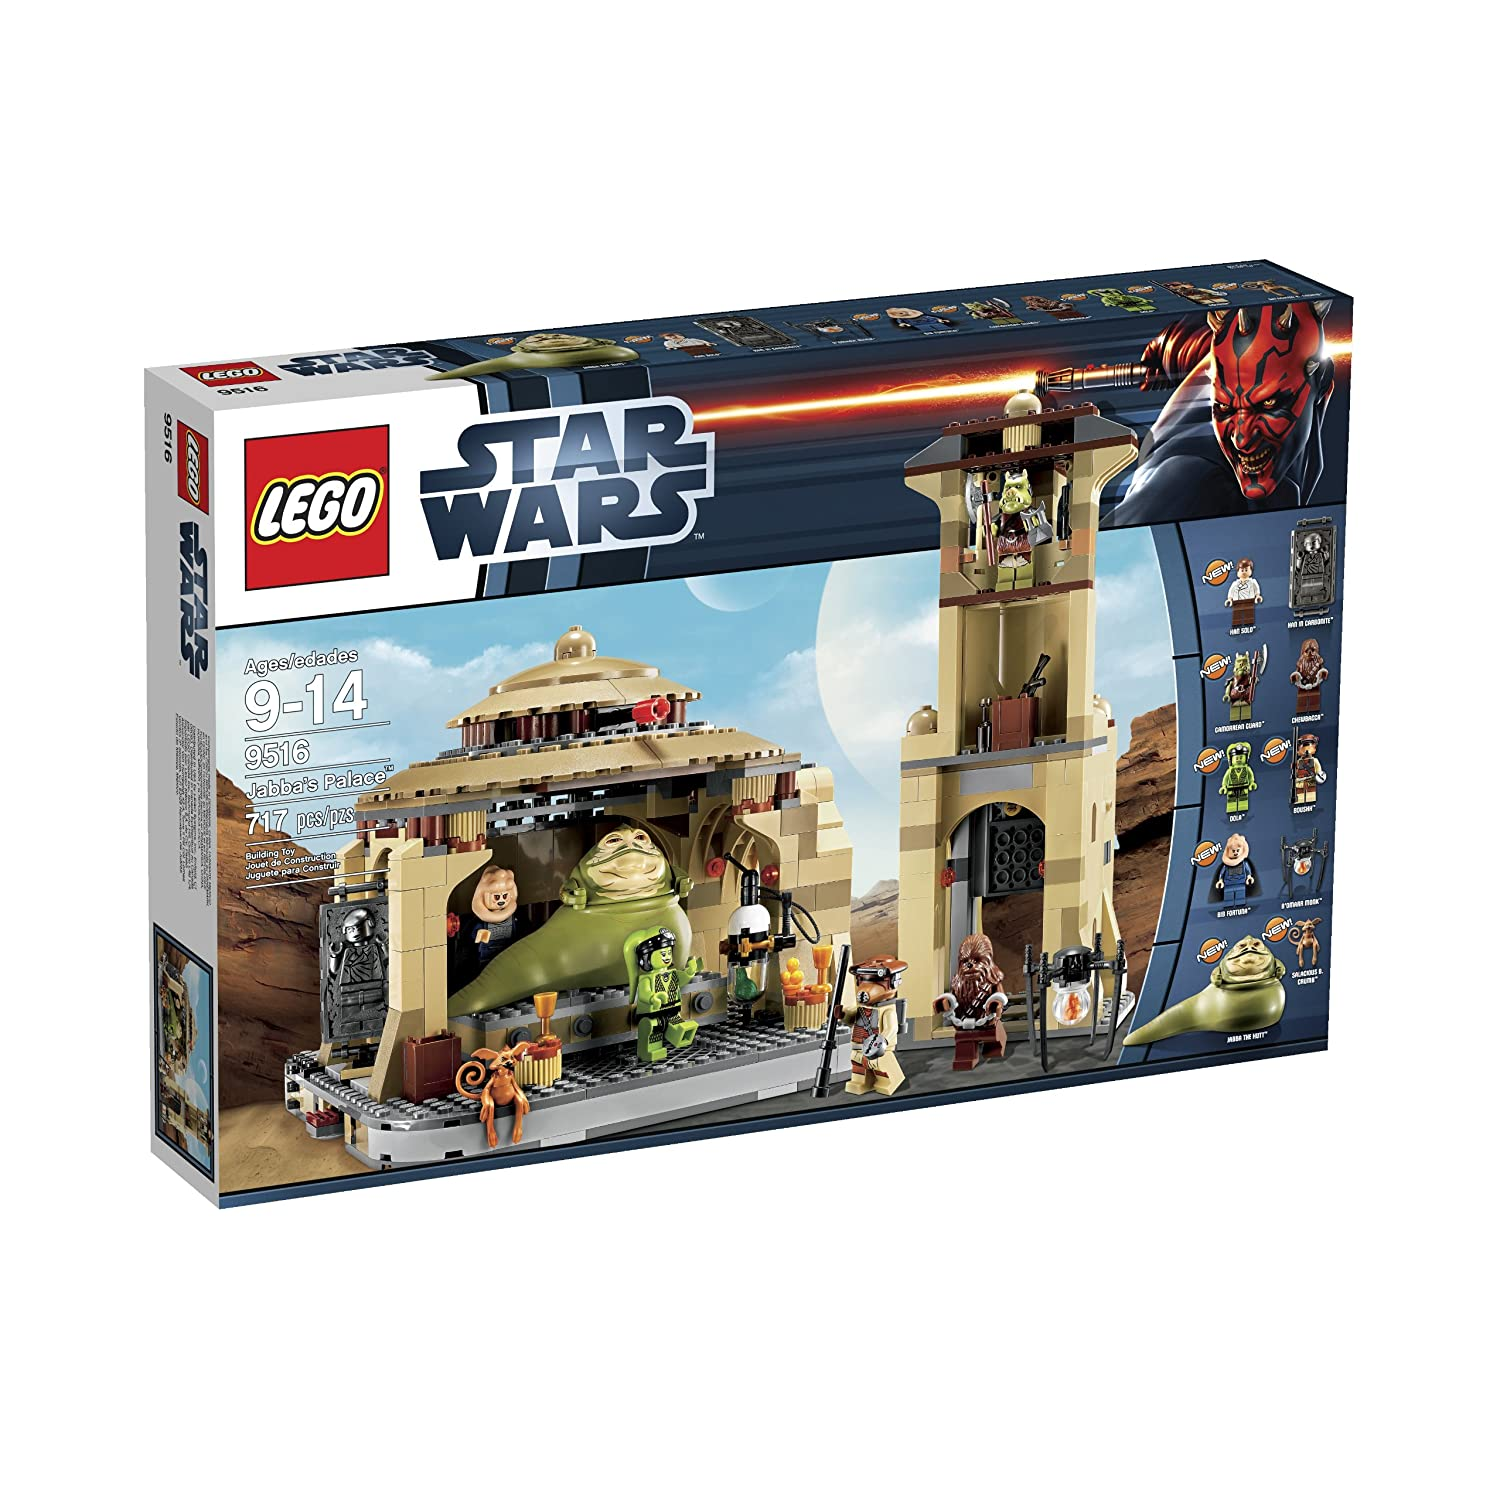 625ce90736 Amazon.com: LEGO Star Wars 9516 Jabba's Palace (Discontinued by  manufacturer): Toys & Games